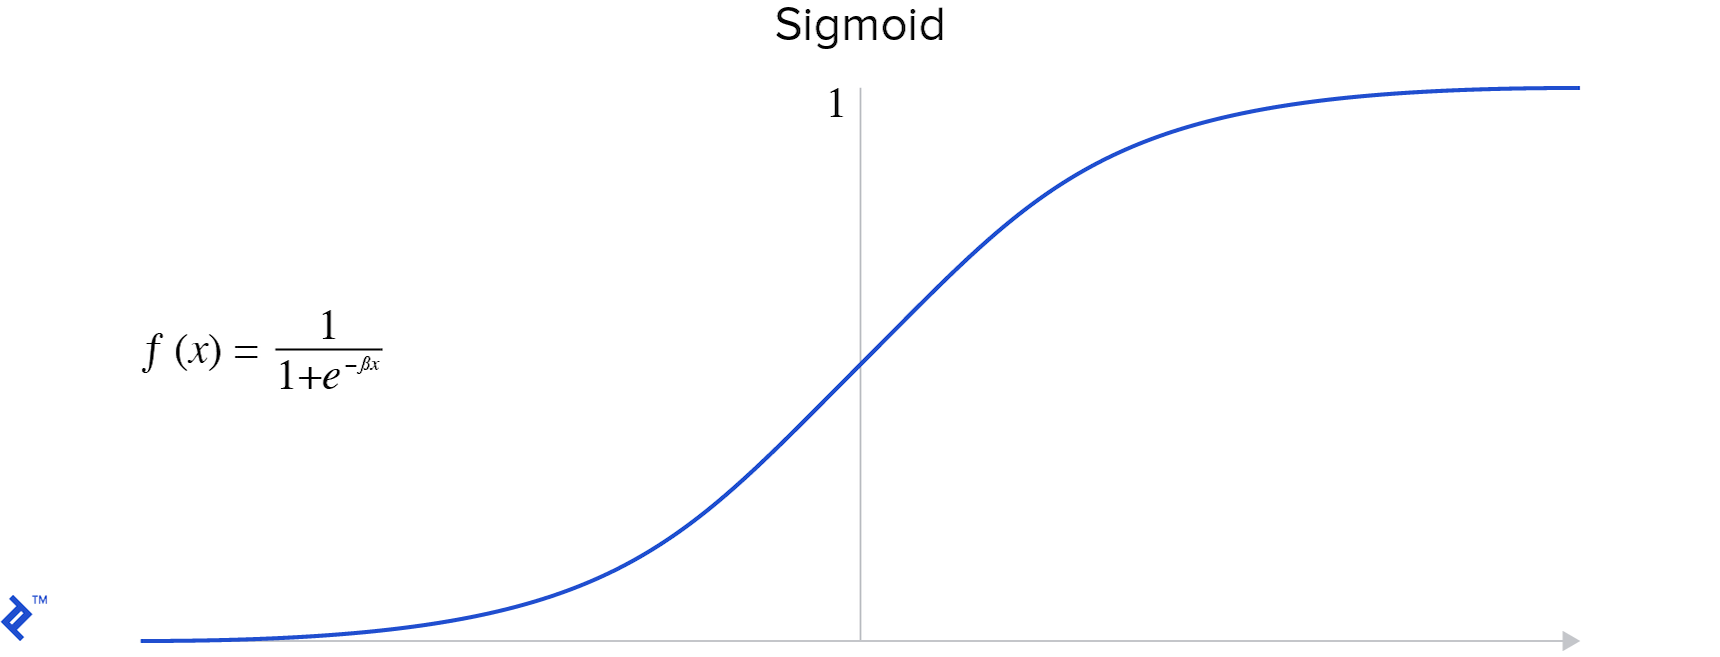 The sigmoid function